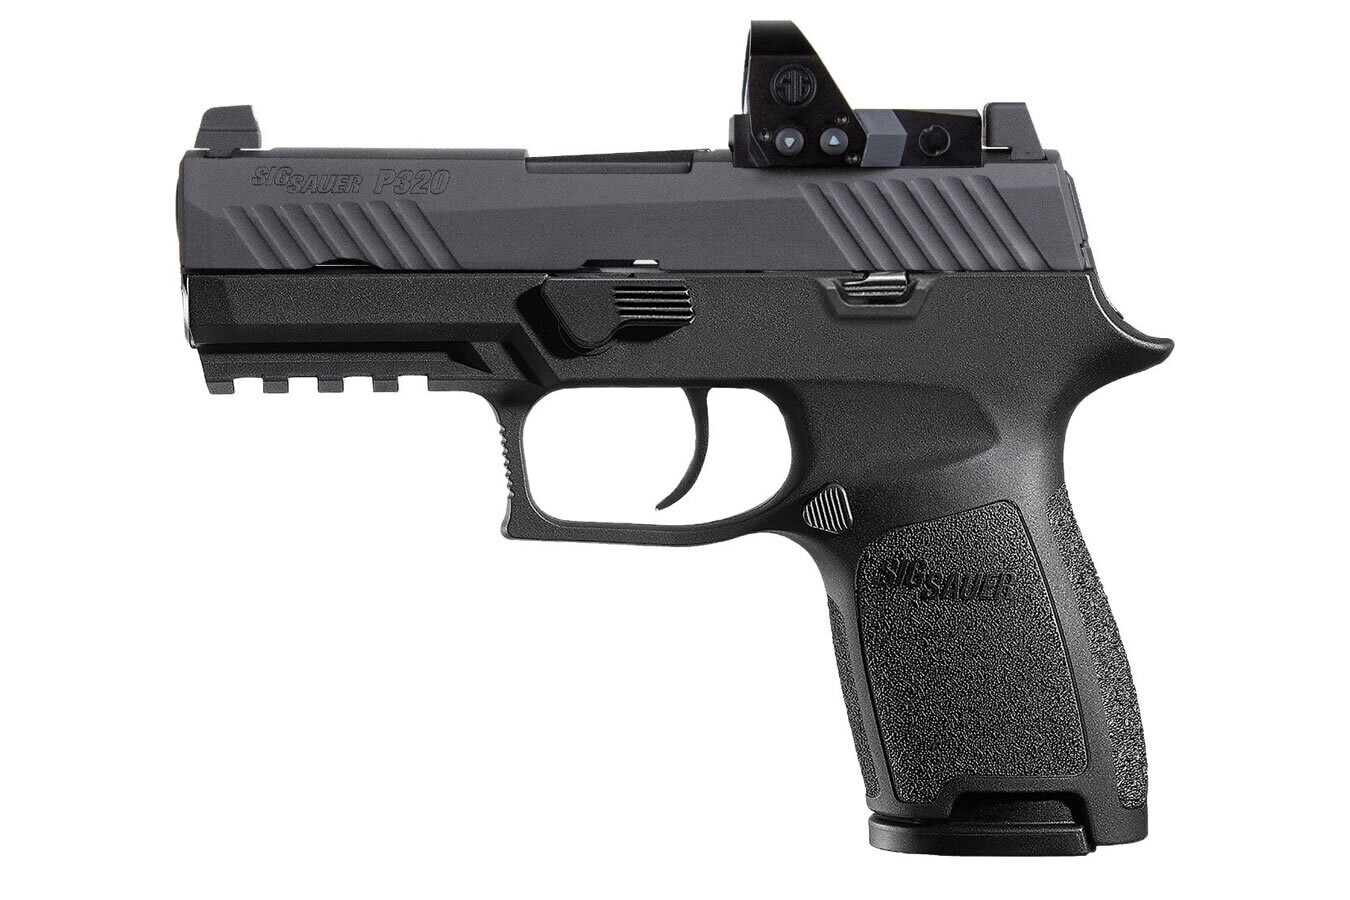 80% Sig Sauer P320 RXP Compact 9mm Striker-Fired Pistol with ROMEO1 Pro Red Dot Optic (10-Round Model) - Comes With P320 80% Insert MUP 1 - Pistol Case